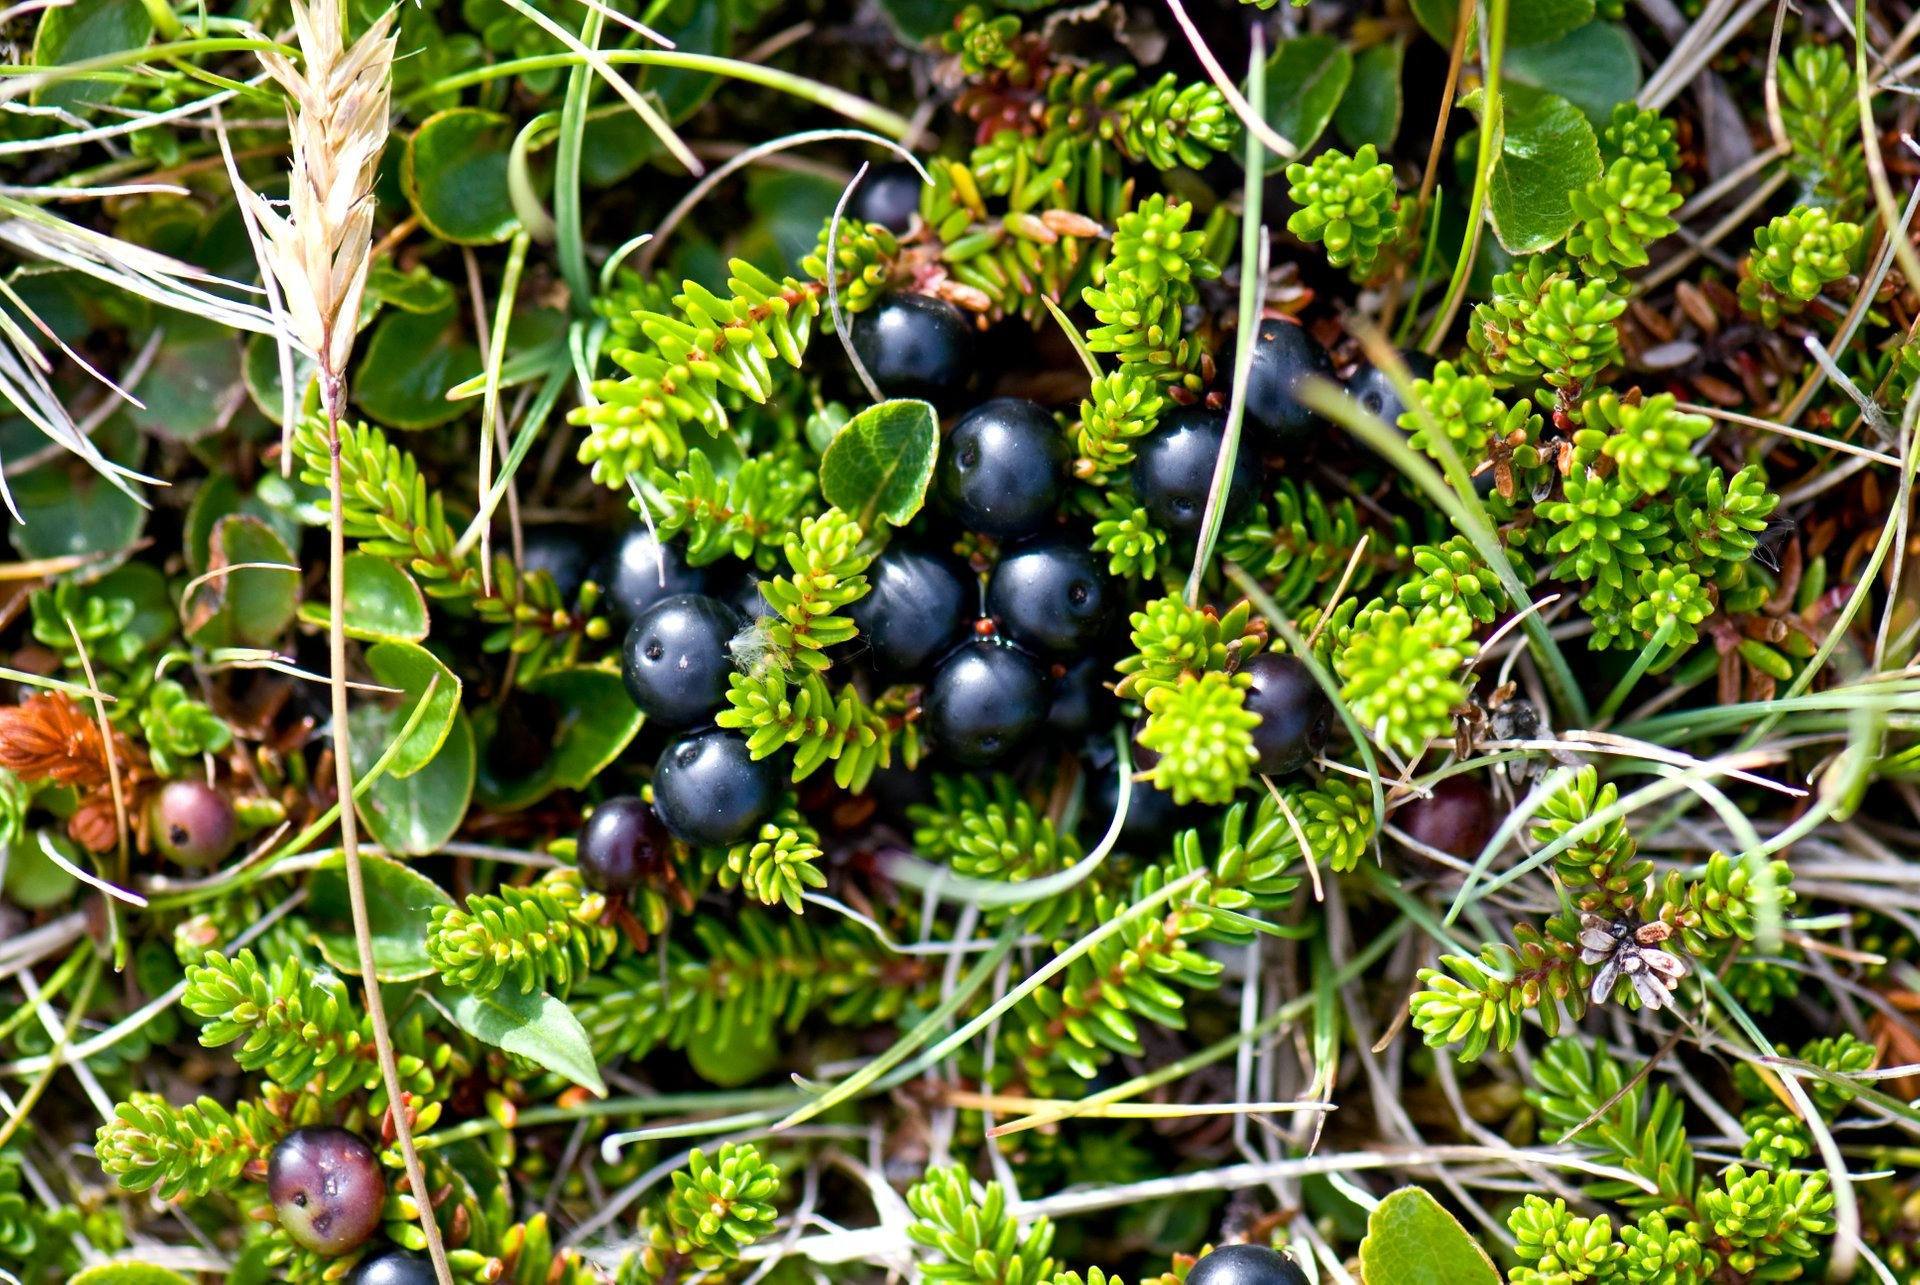 Wild Berries Season in Iceland 2020 - Best Time